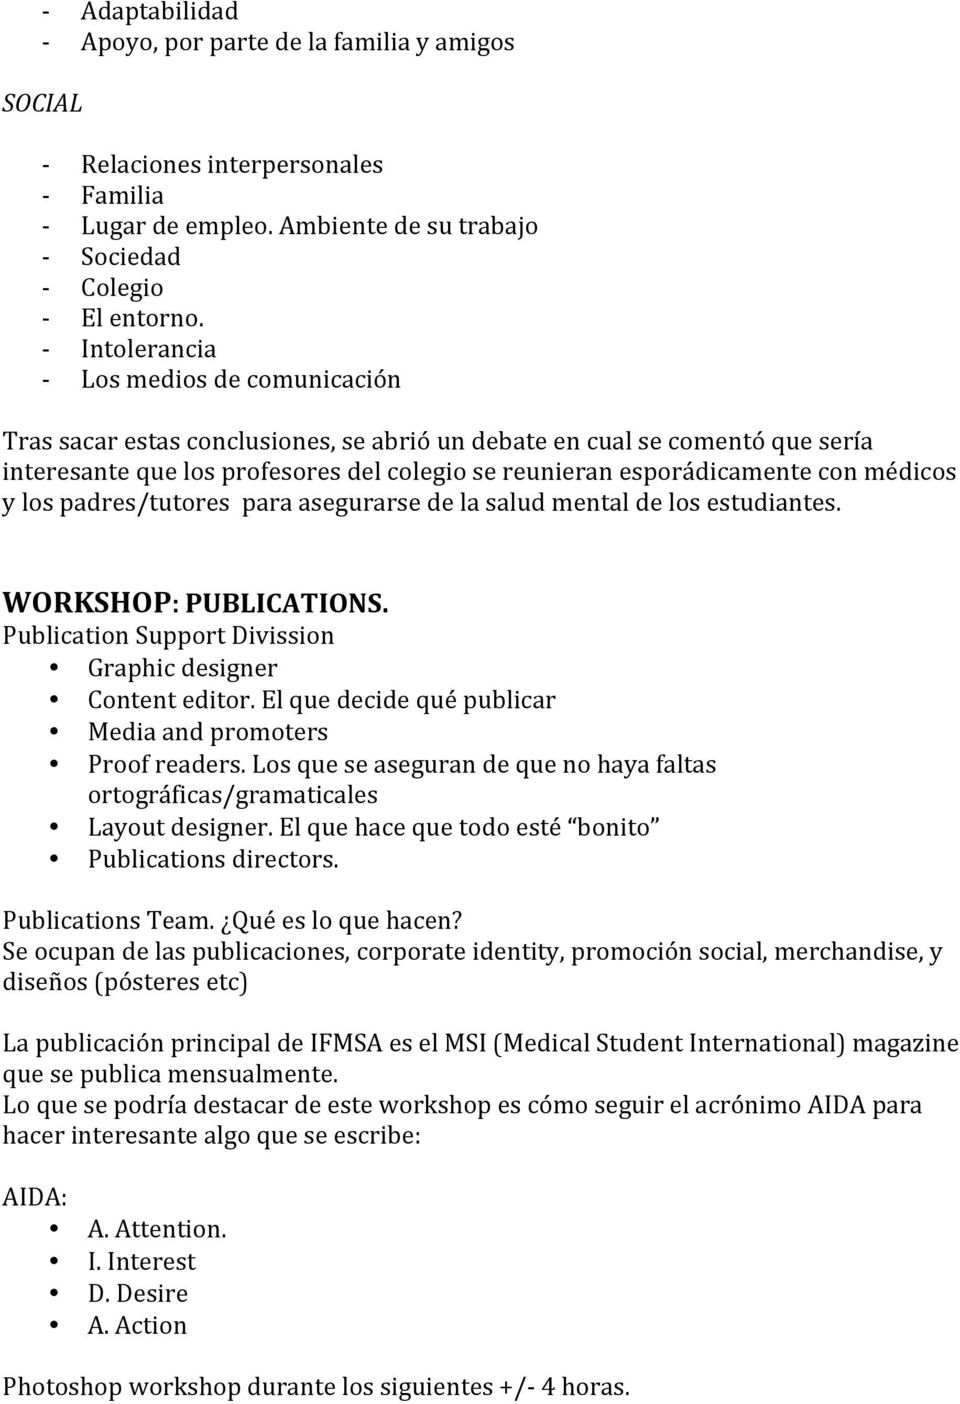 médicos y los padres/tutores para asegurarse de la salud mental de los estudiantes. WORKSHOP: PUBLICATIONS. Publication Support Divission Graphic designer Content editor.